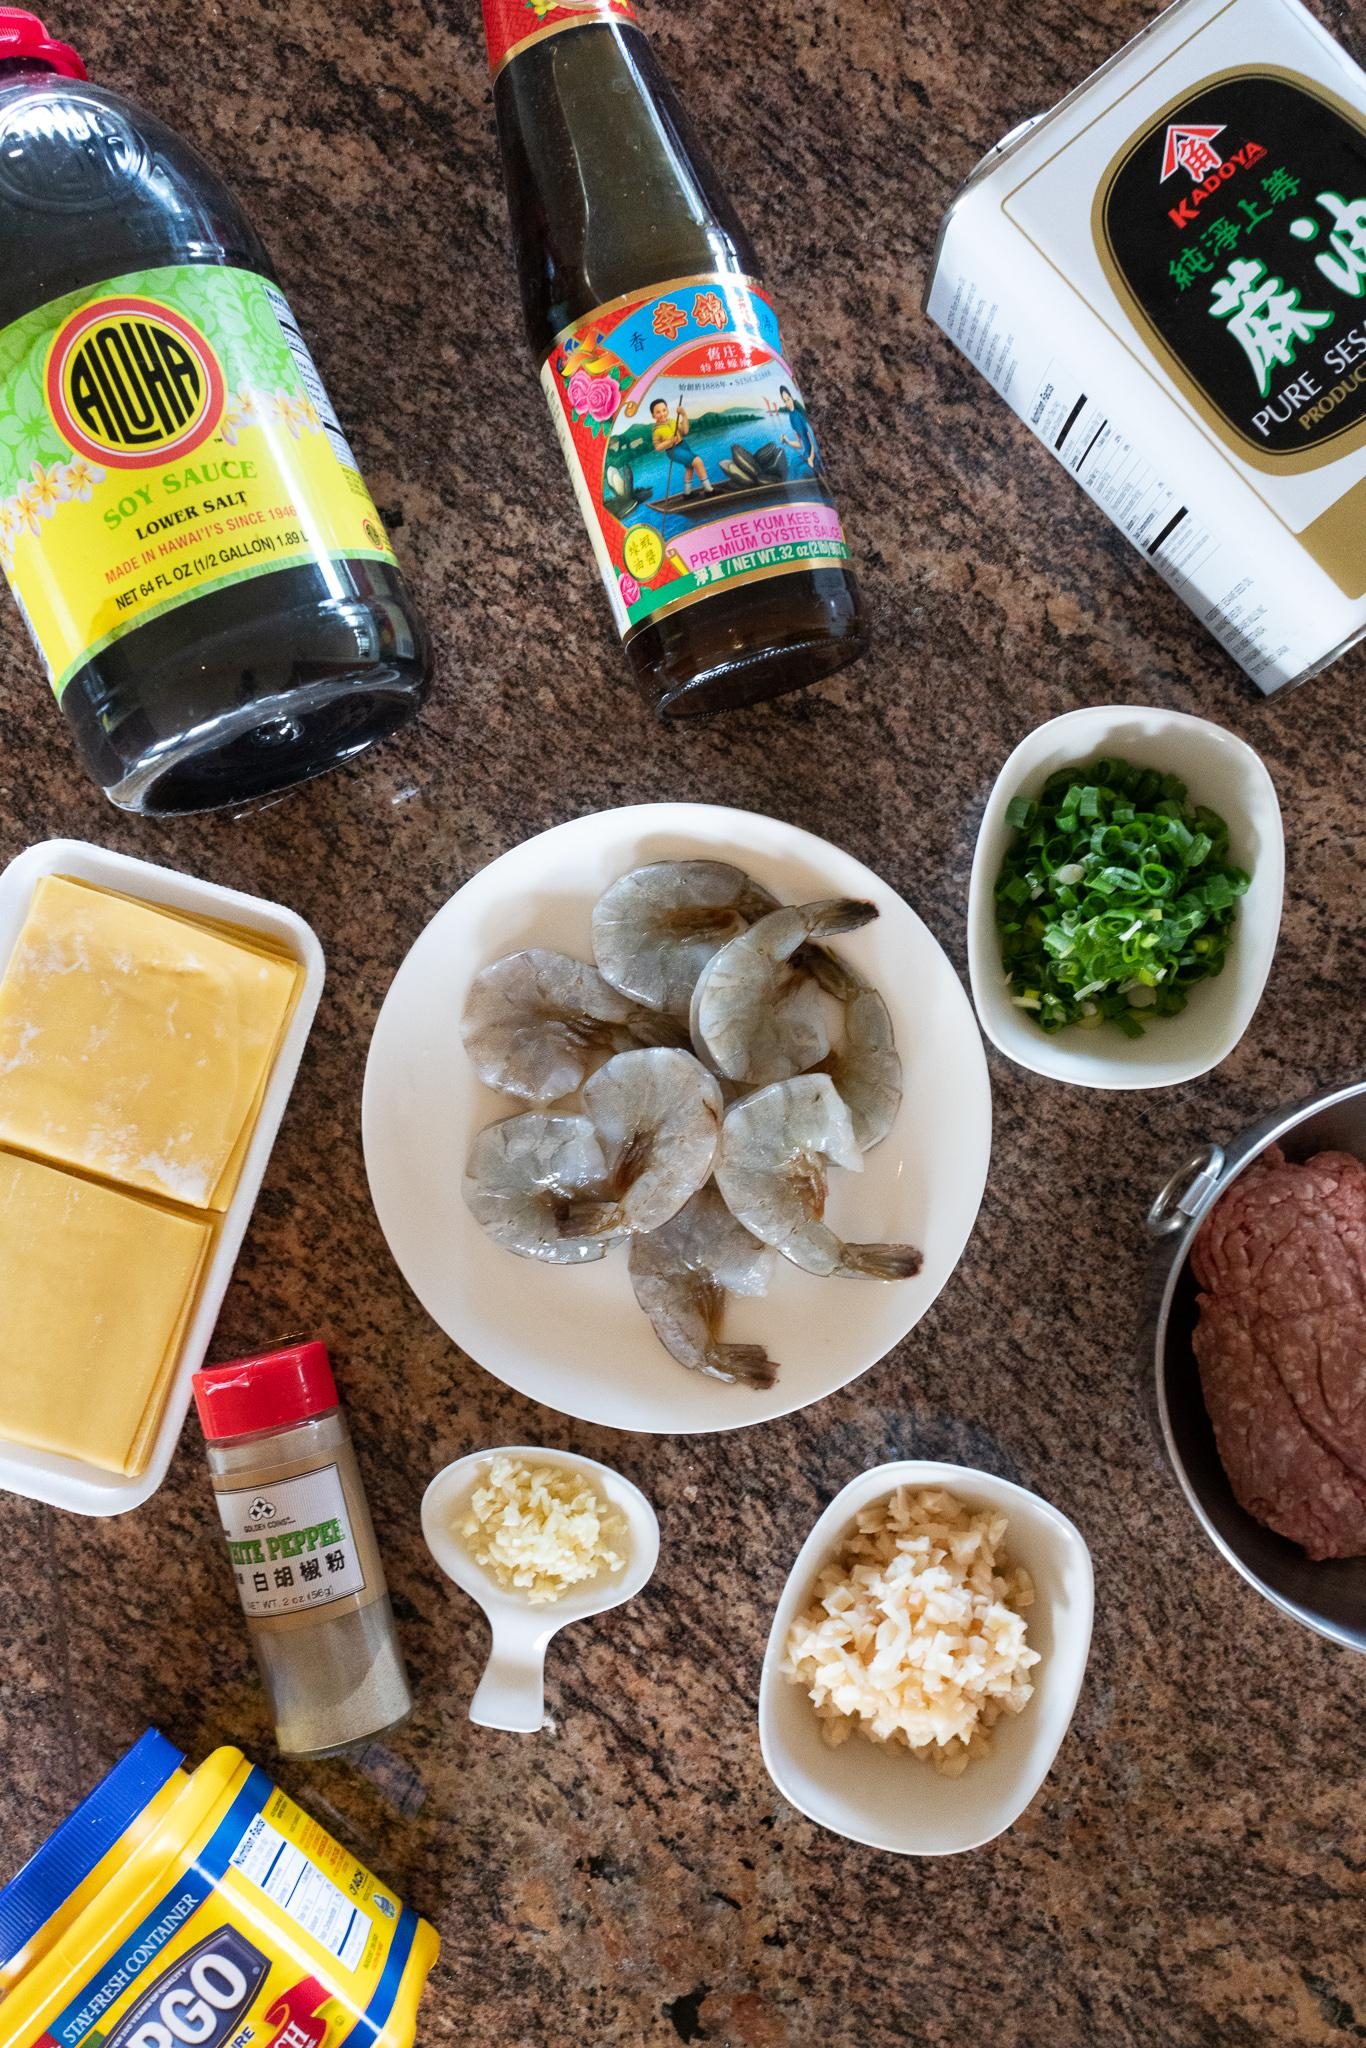 Ingredients for Gau Gee laid out: ground pork, shrimp, water chestnuts, green onions, garlic, cornstarch, soy sauce, oyster sauce, sesame oil, white pepper, and square wonton wrappers